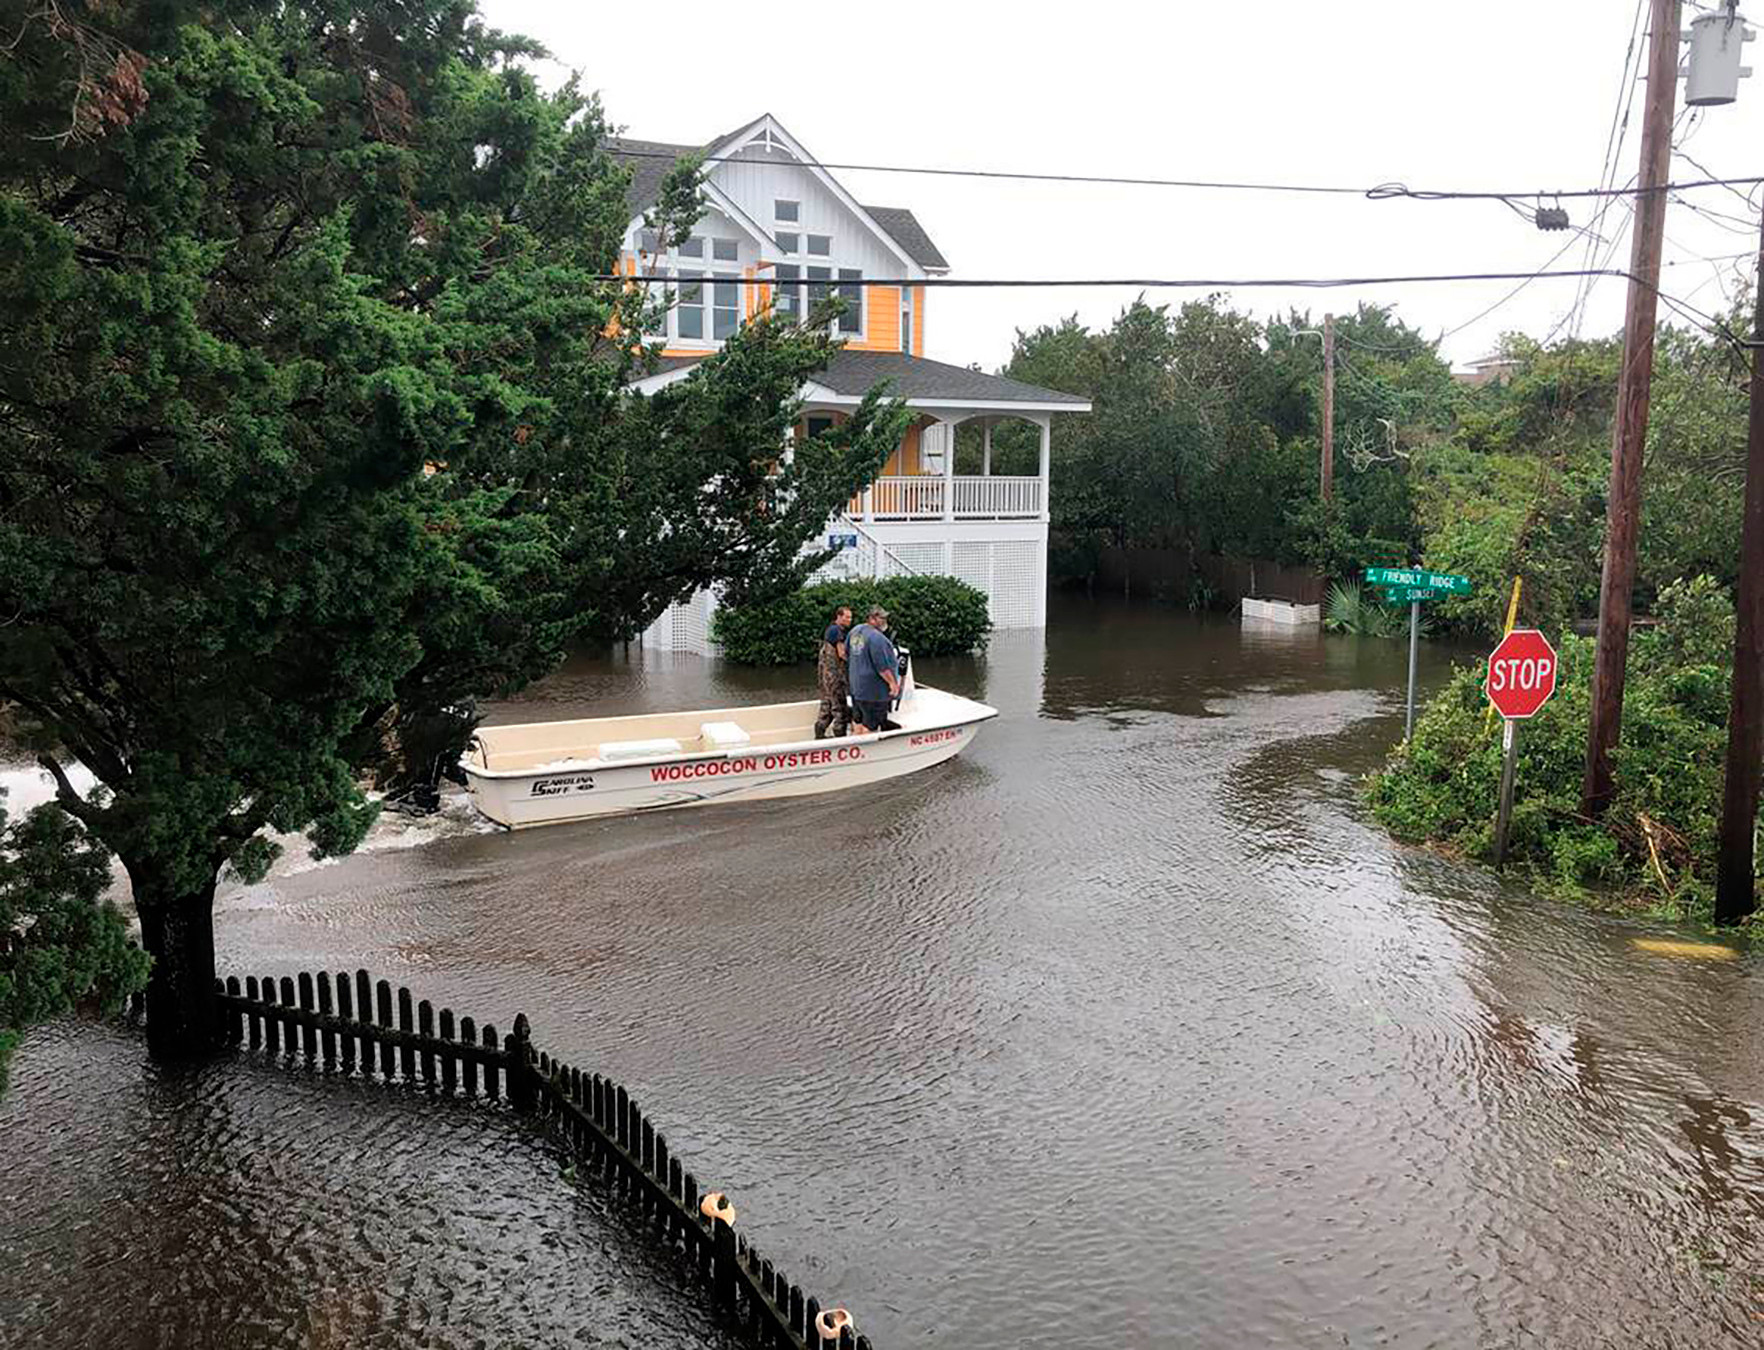 800 people have been left stranded on the North Carolina island of Ocracoke by Hurricane Dorian